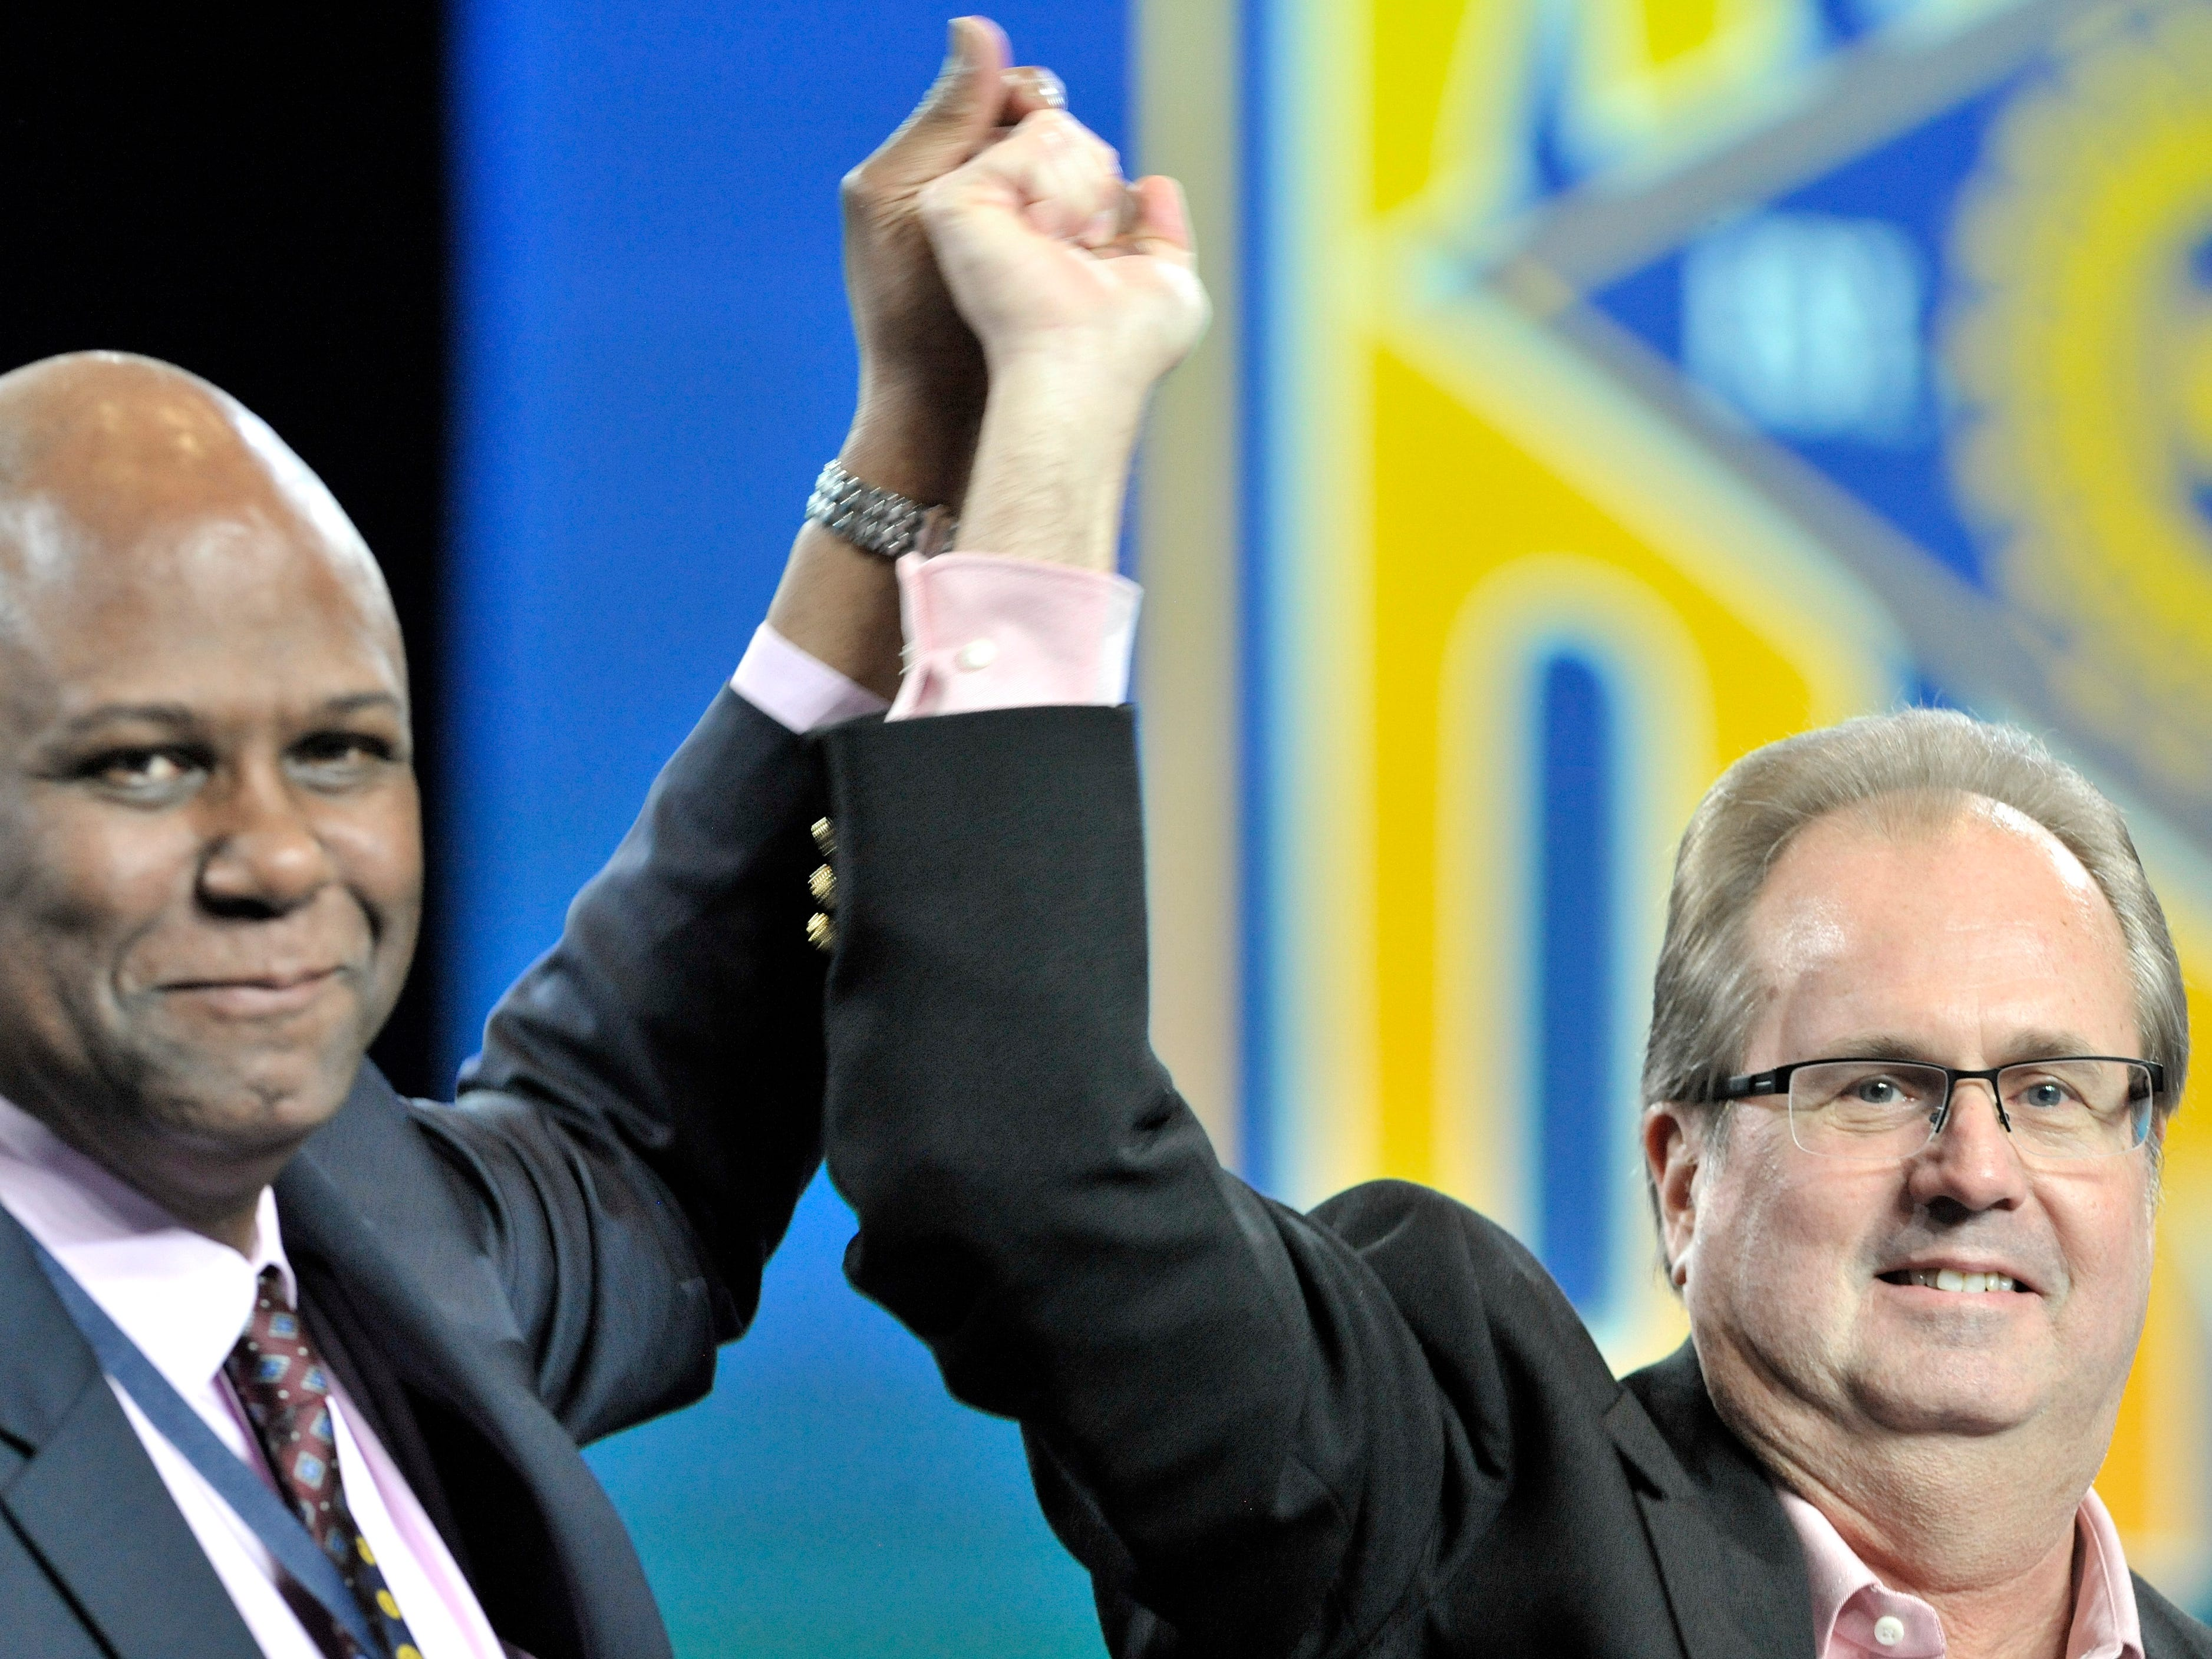 UAW Secretary Treasurer Raymond Curry, left, and President Gary Jones raise their hands after greeting members of the UAW Ford National Negotiating Team.